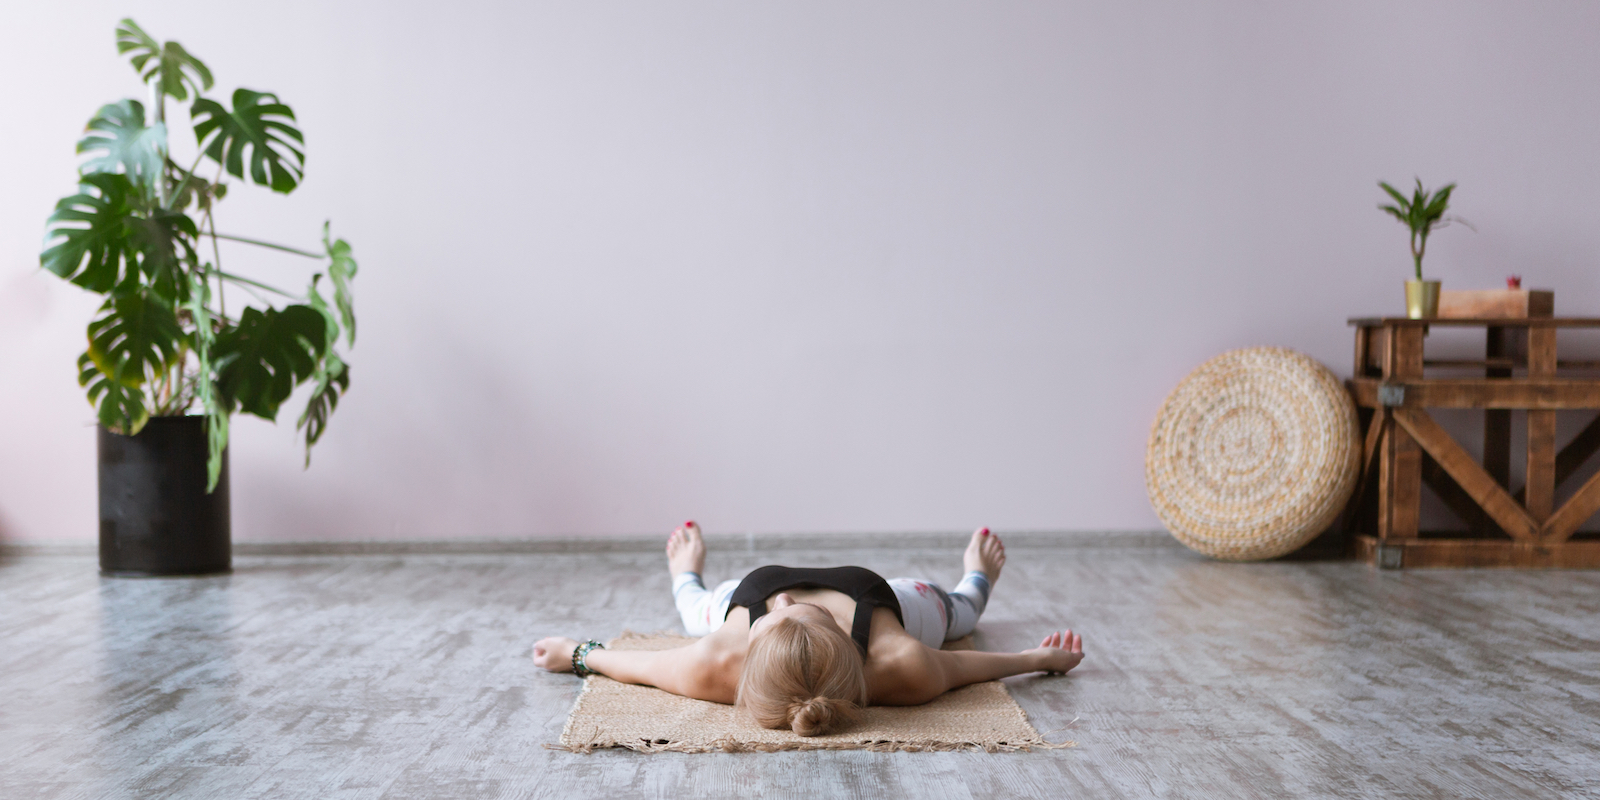 3 Unique Qualities Of Yoga Nidra Practice vs. Traditional Meditation